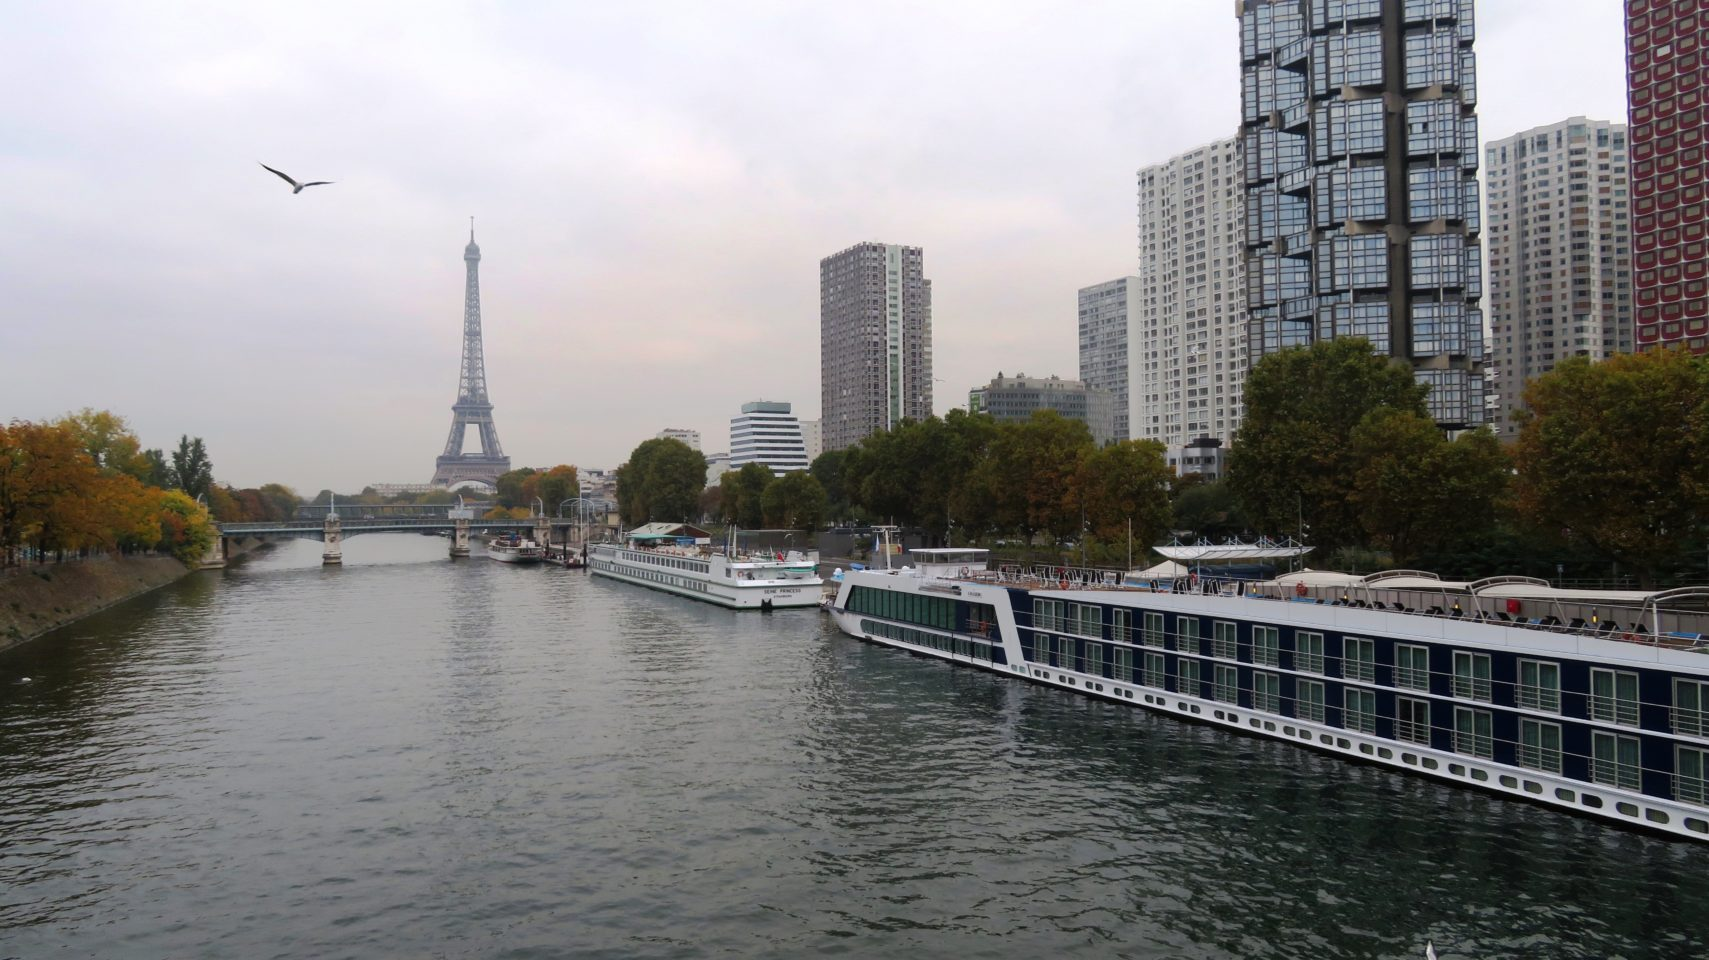 AmaLegro River Cruise Ship Docked in Paris, France ~ Paris and Normandie AMAWaterways Cruise